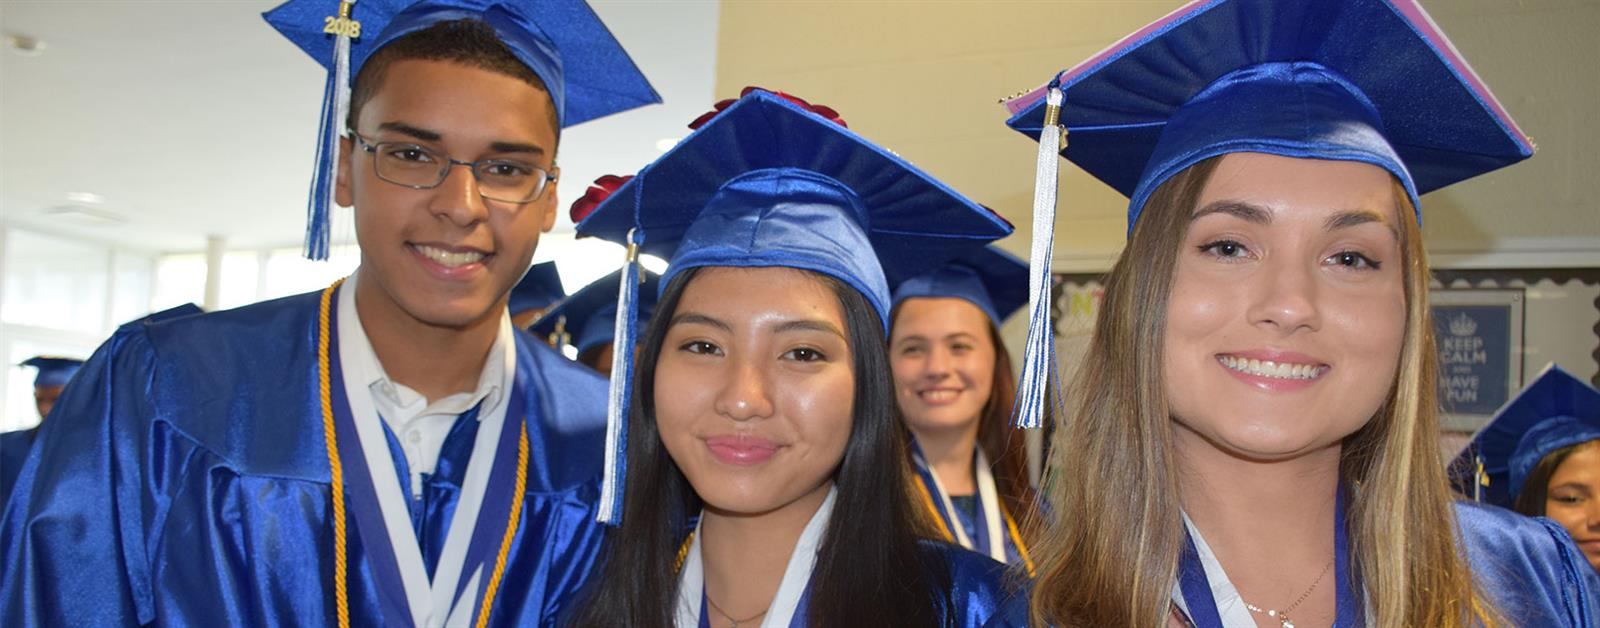 Copiague's Class of 2018 marches on photo